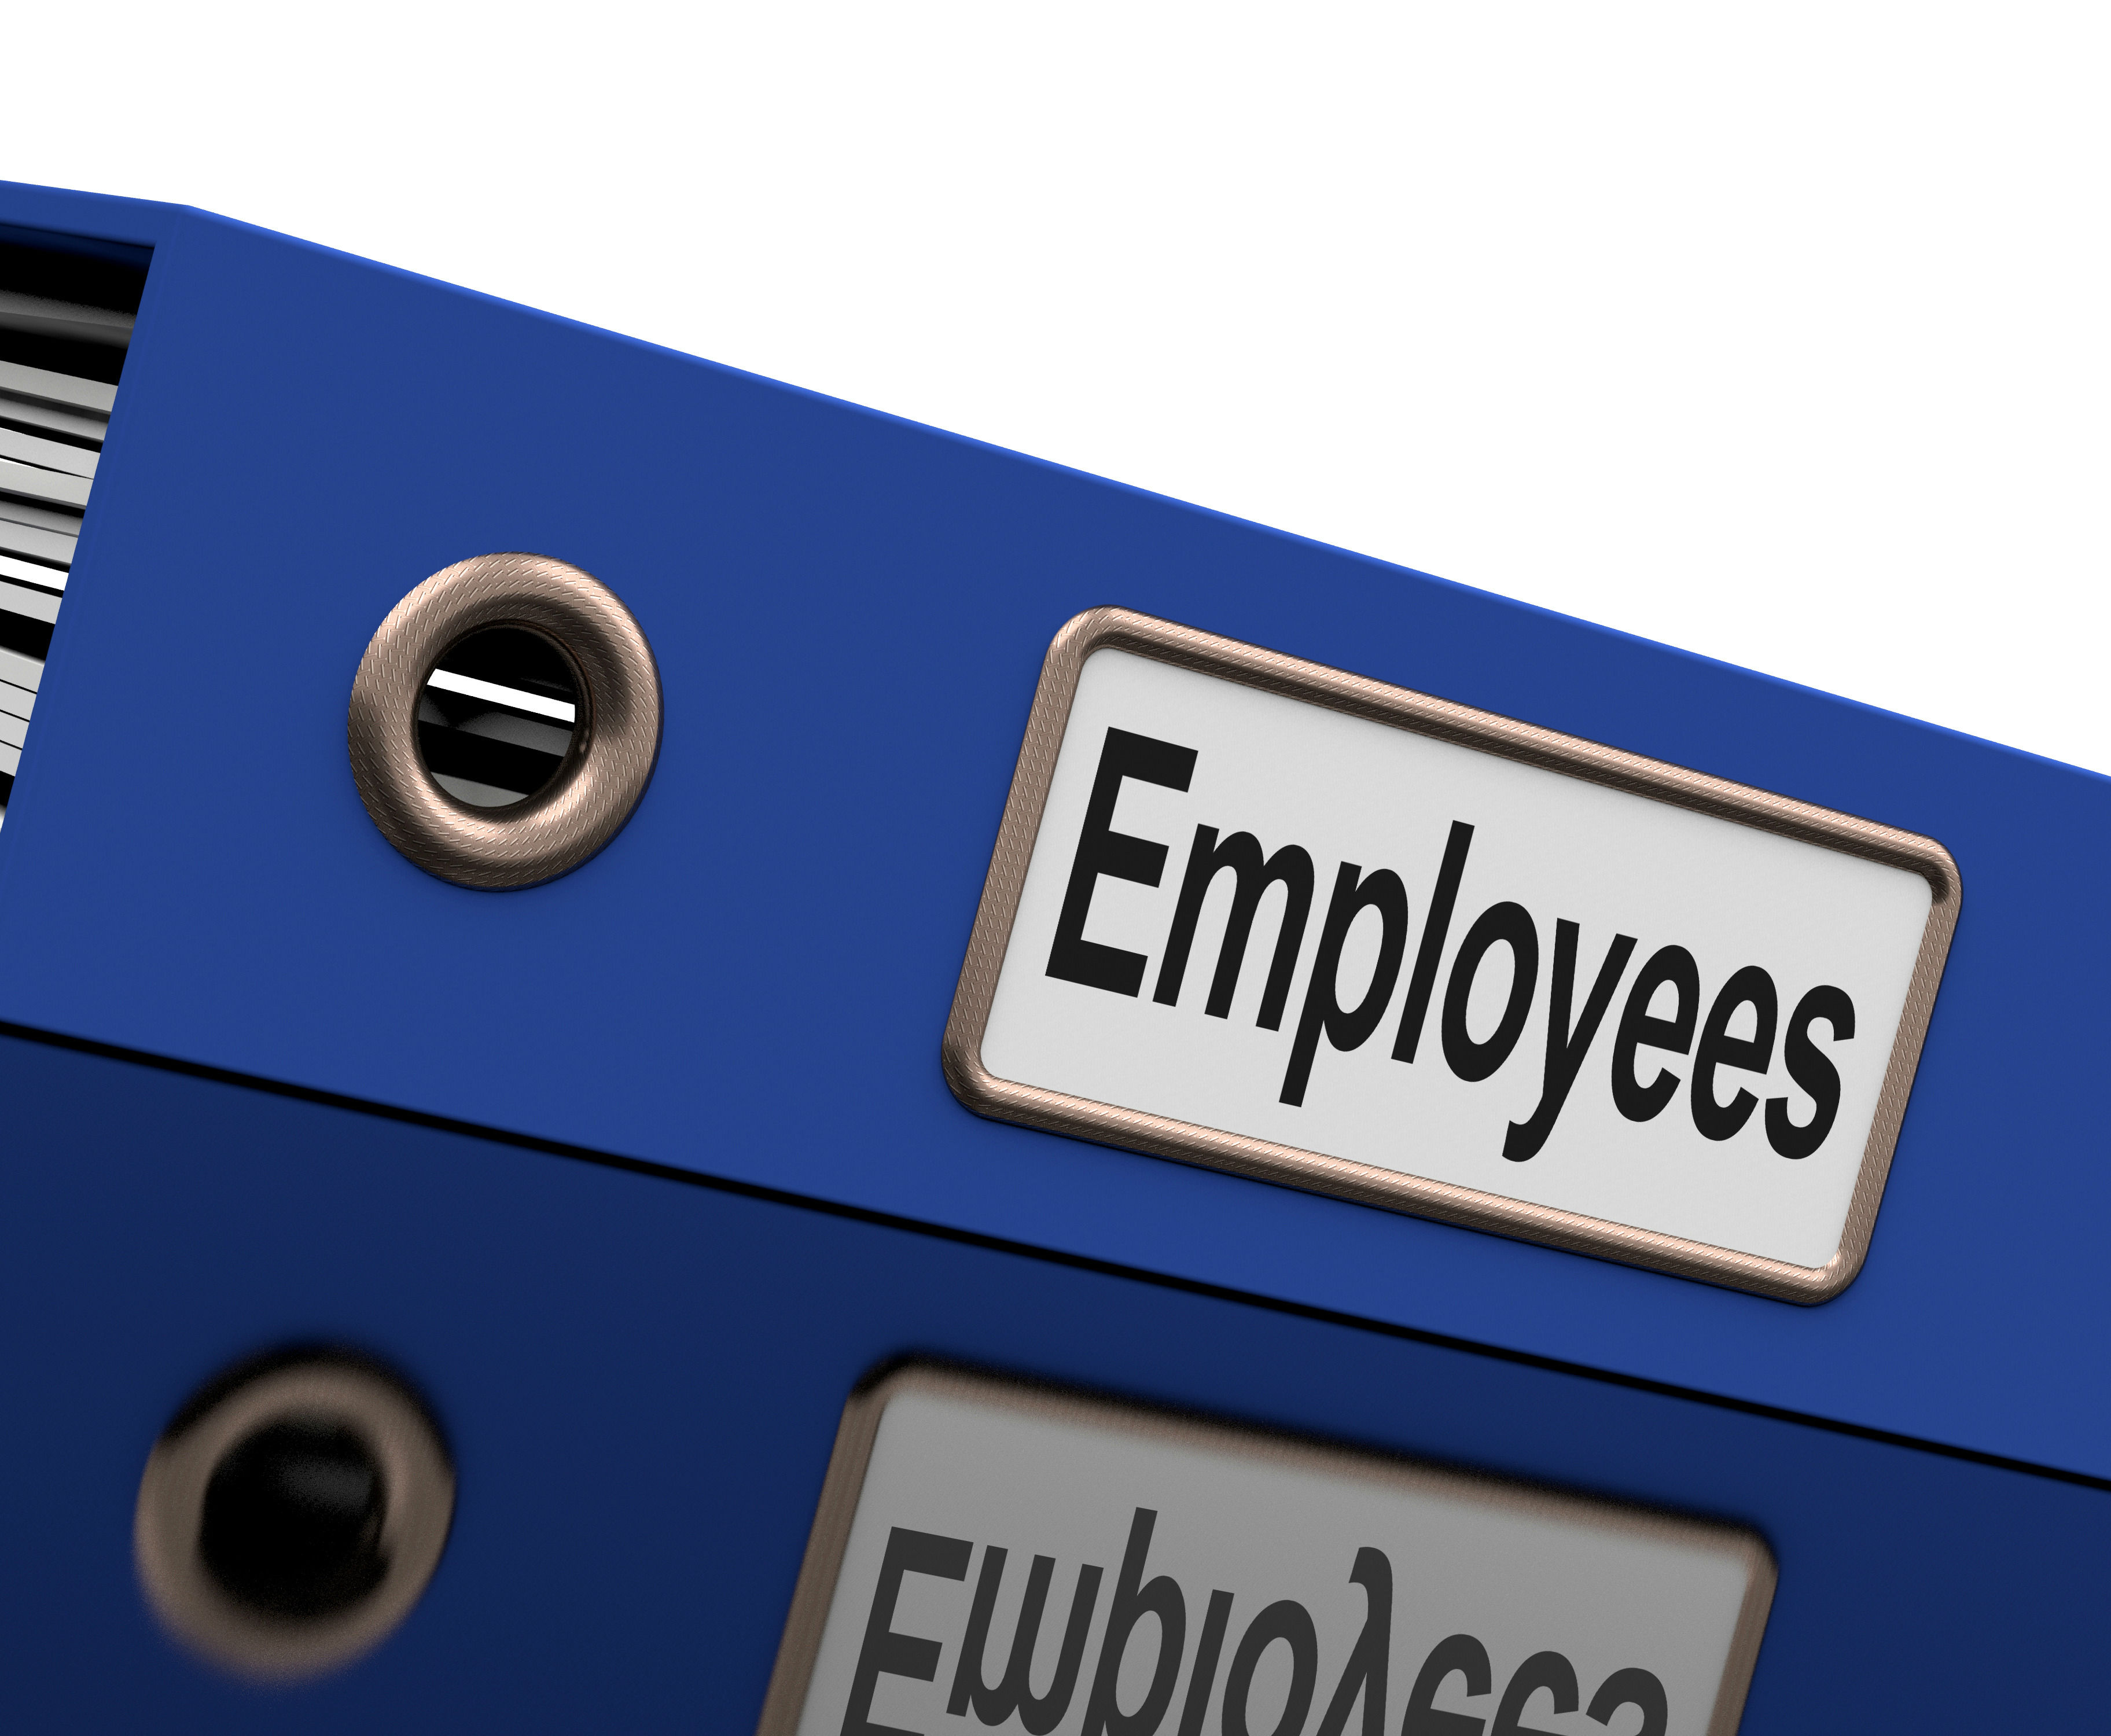 U.S. Supreme Court Addresses First Amendment Rights of Public Employees